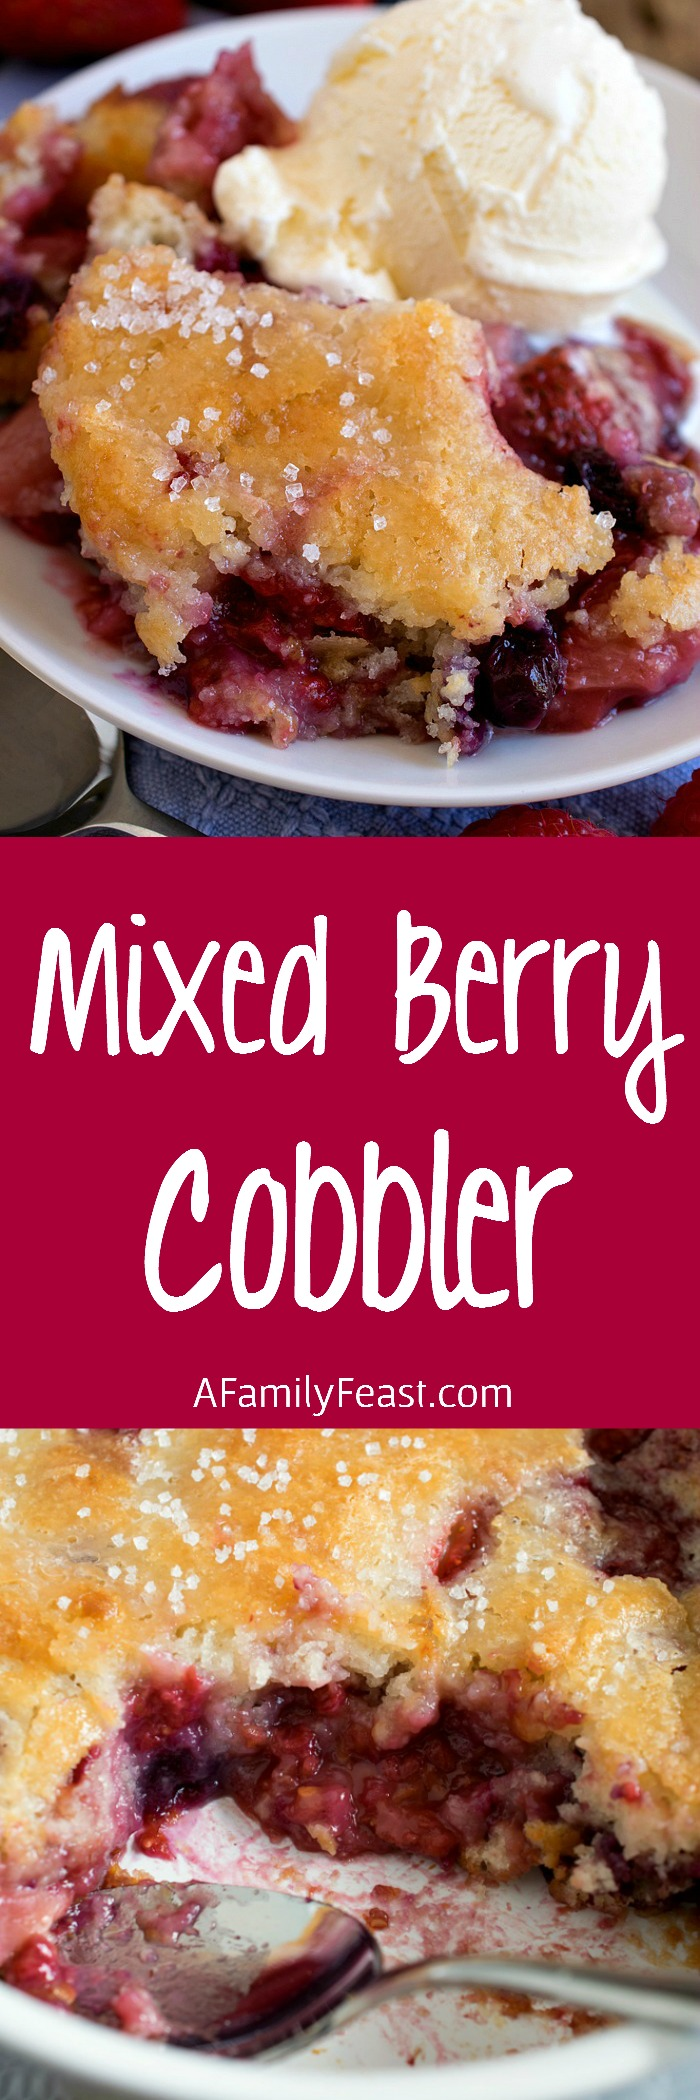 Mixed Berry Cobbler - The ultimate summertime dessert! Strawberries, blueberries and raspberries with a perfect cobbler cake topping!